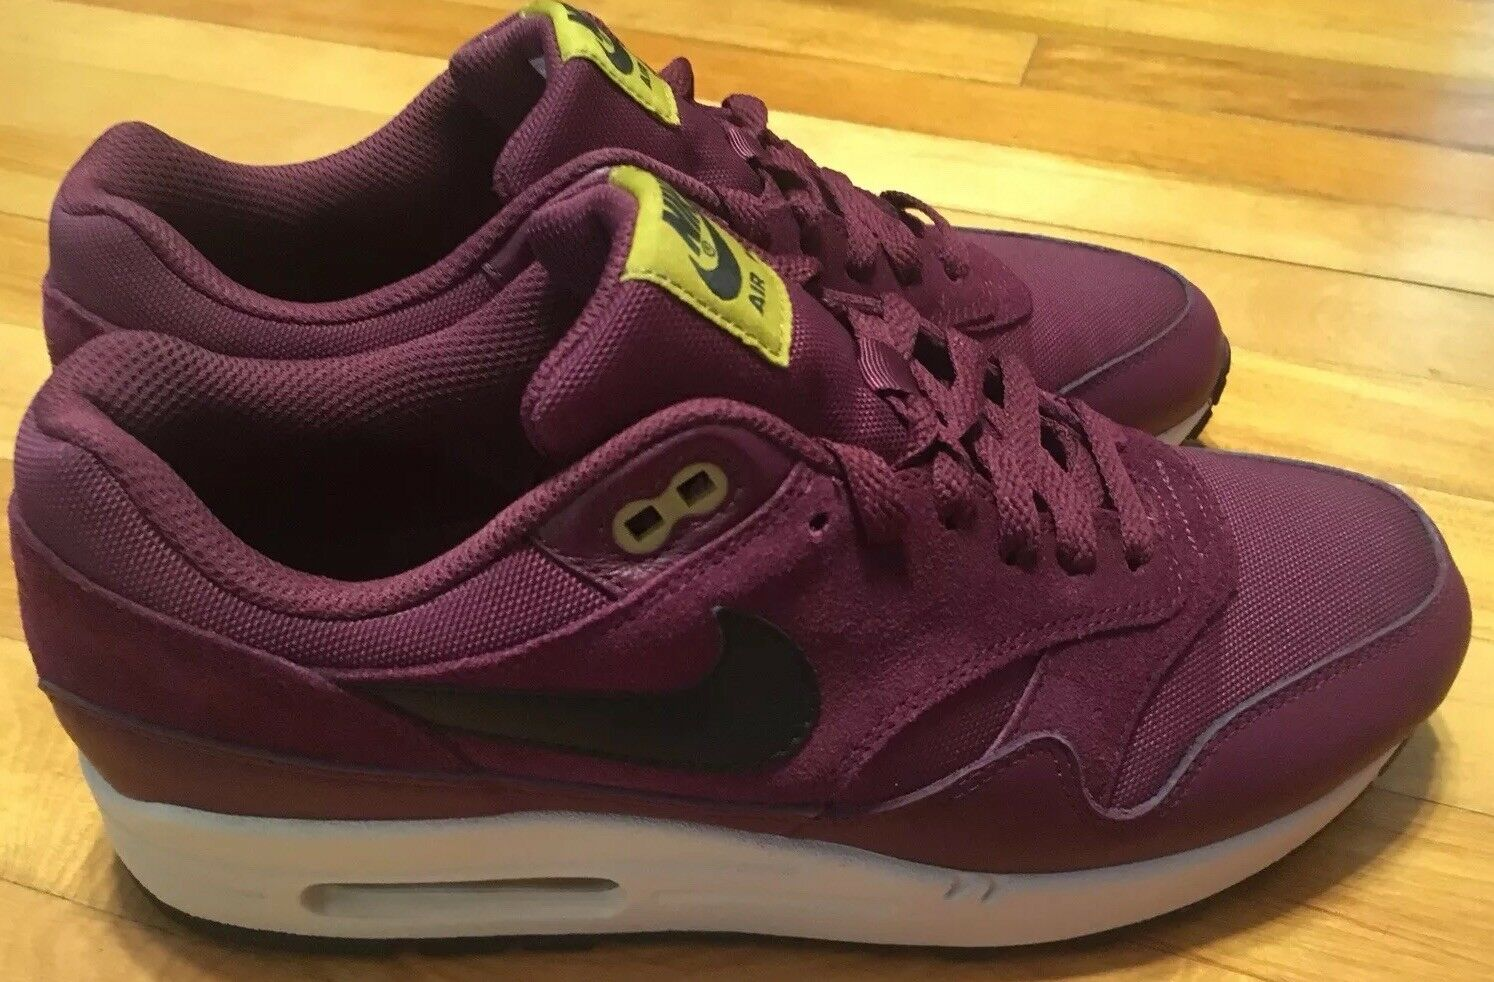 0398abf650 Nike Air Max Burgundy Size 9 Perfect Condition 1 Suede nyecul2485 ...